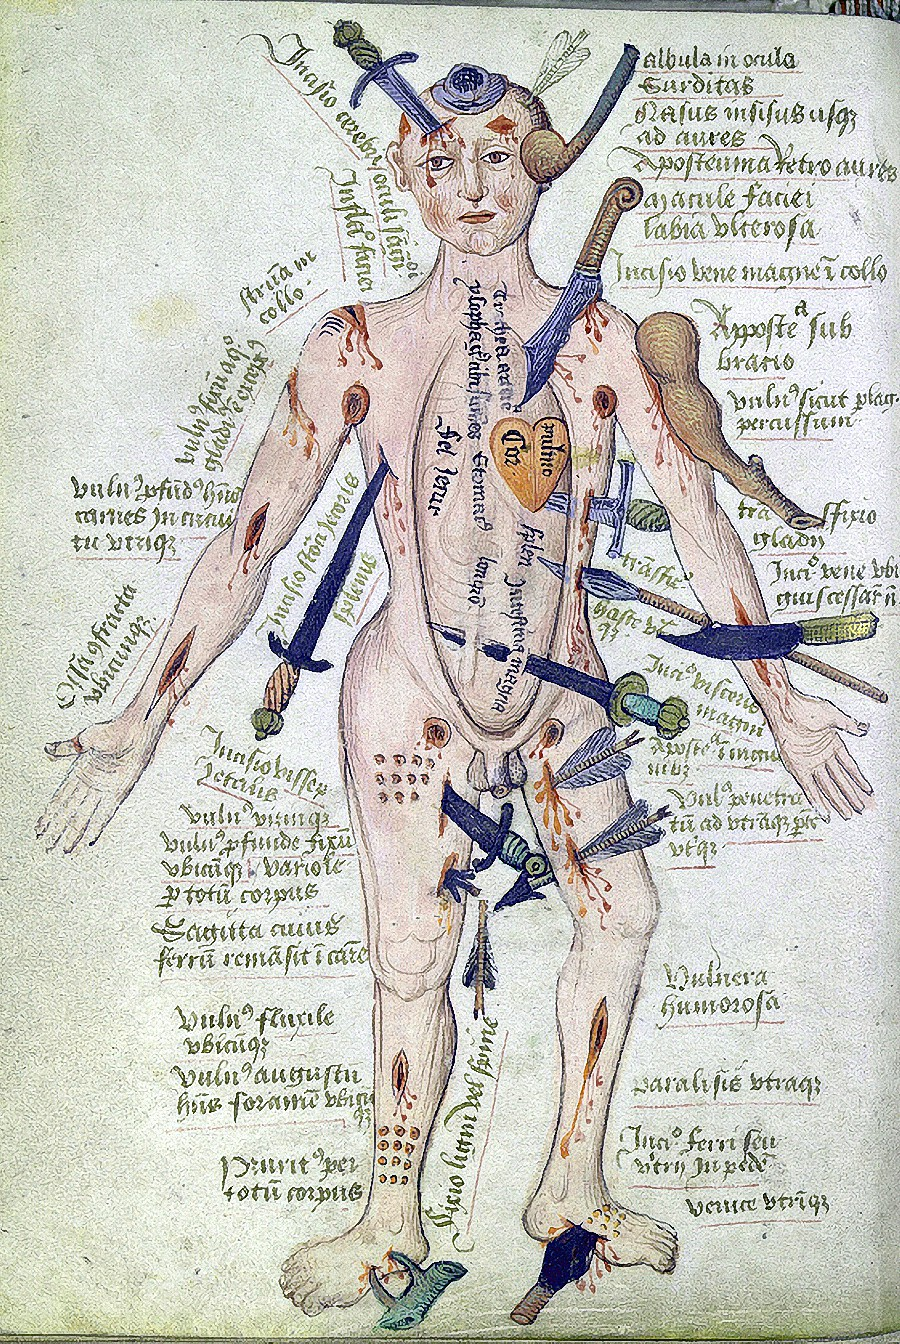 Figure 1: The Wounded Man. Source: publicdomainreview.org